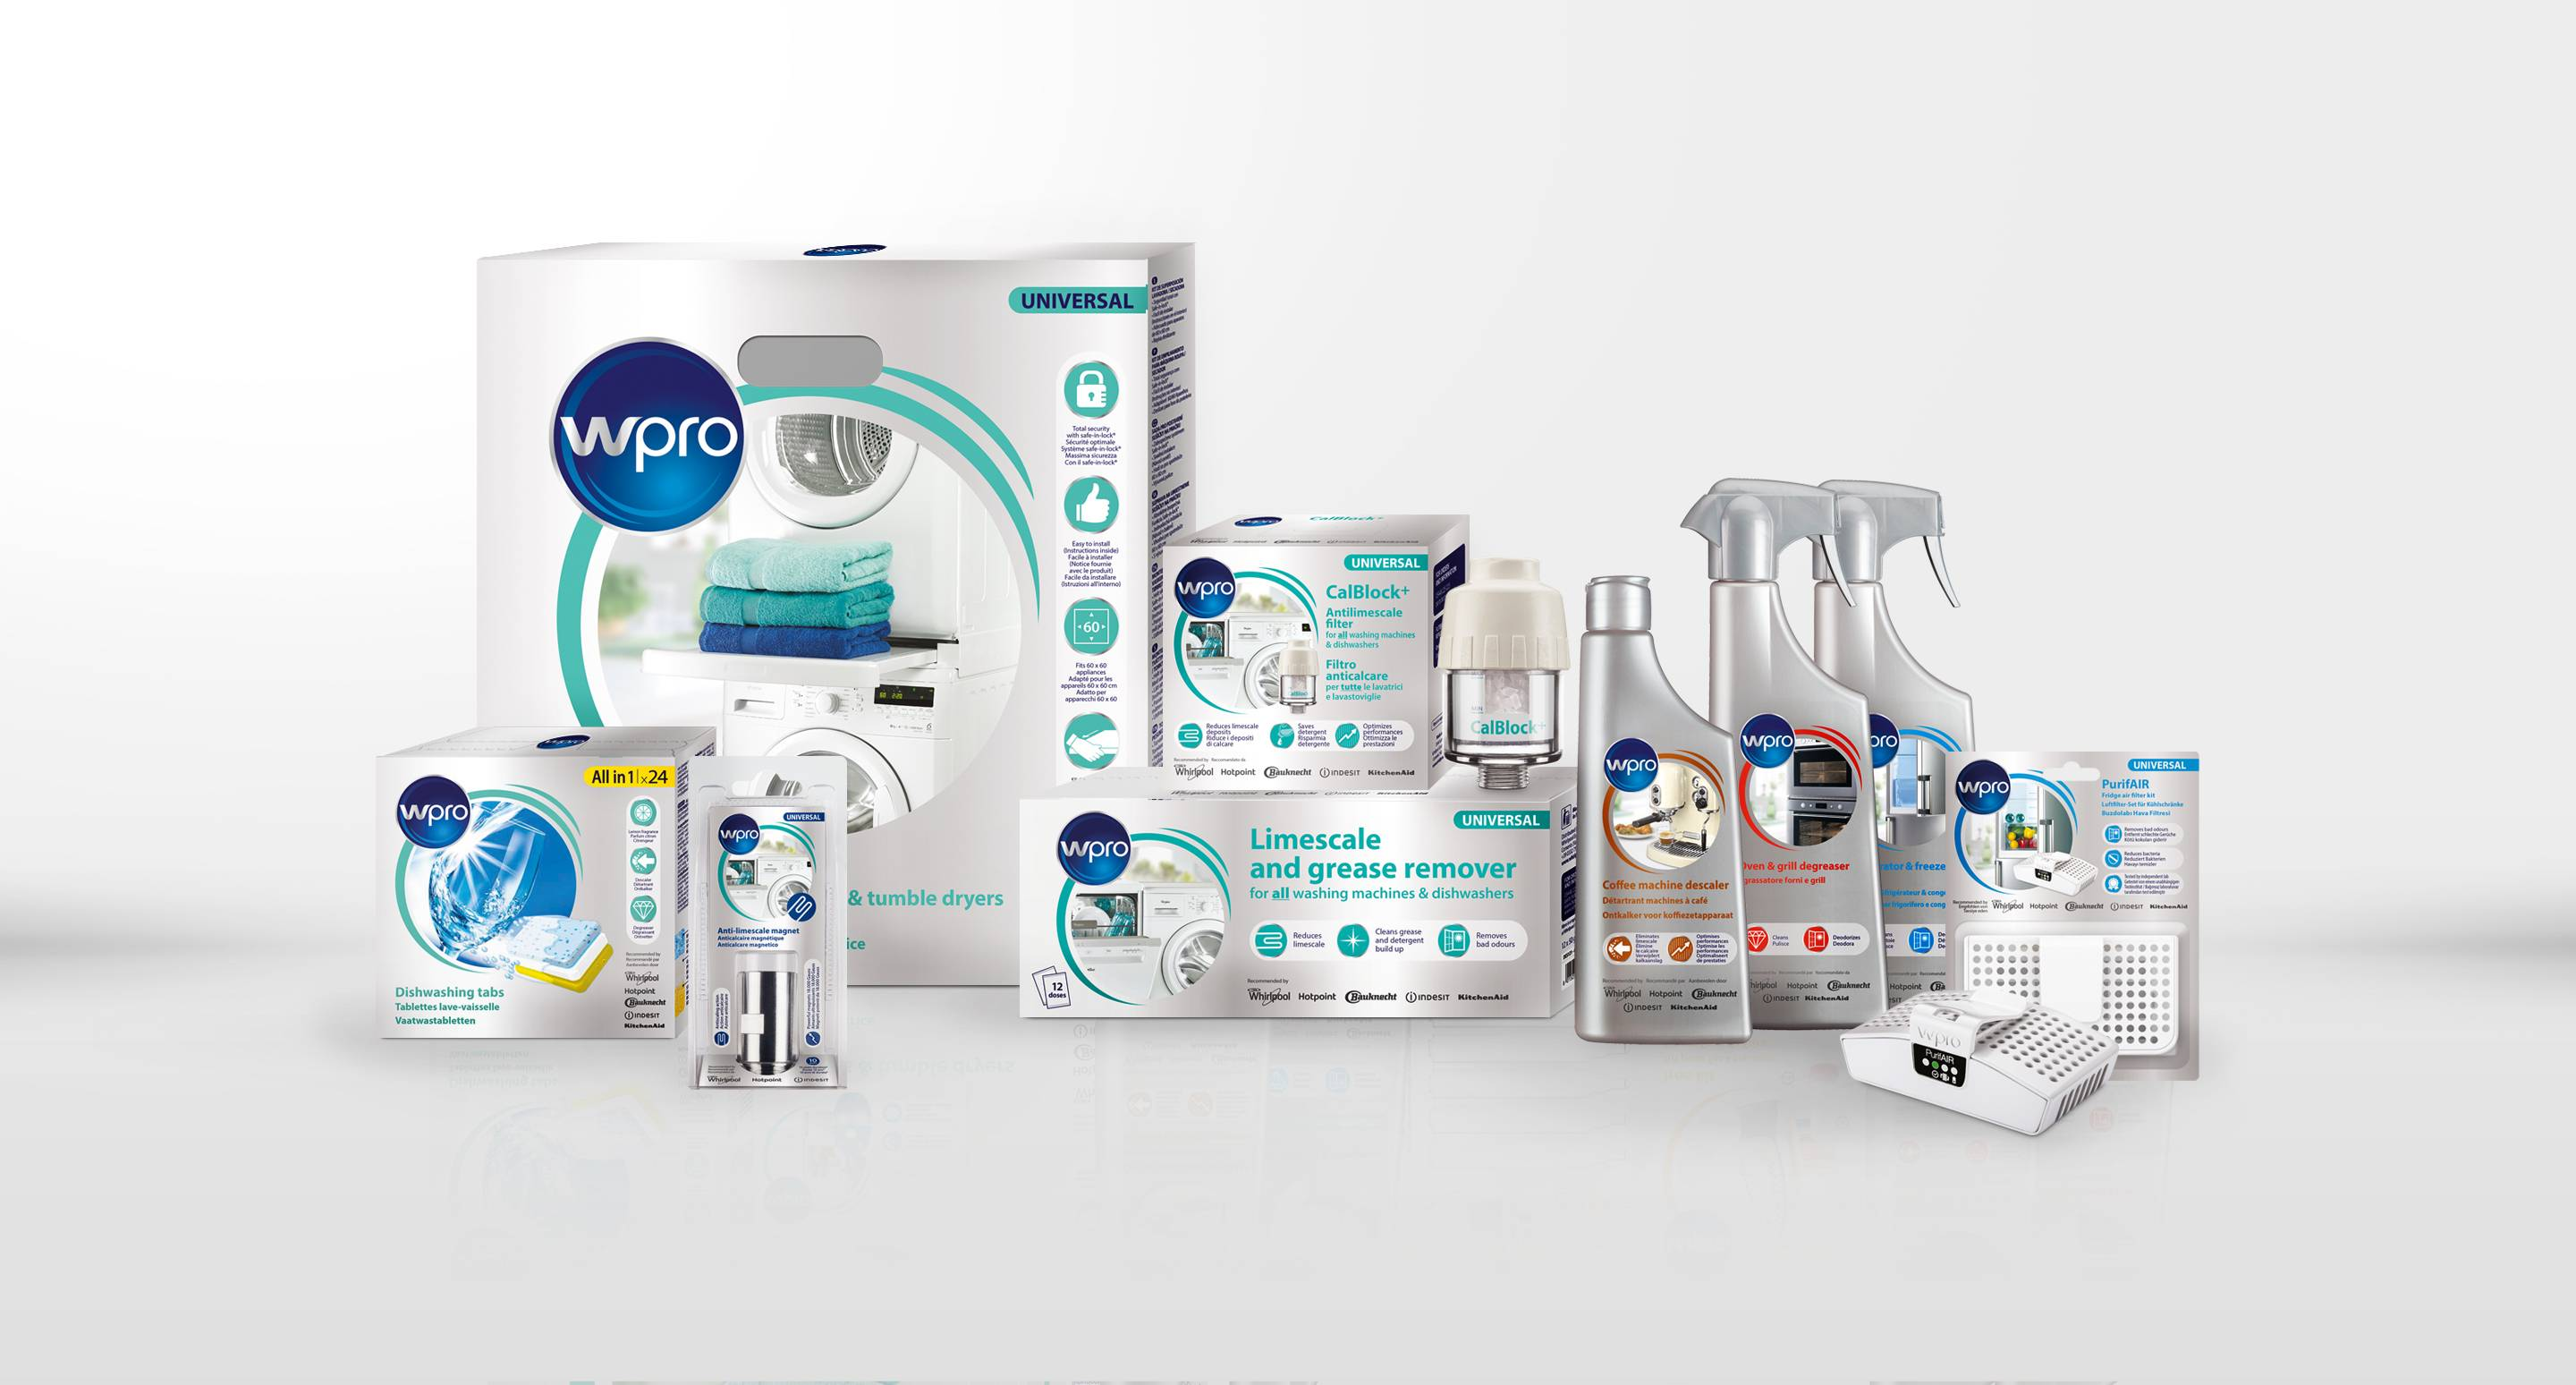 Introducing the Wpro range of accessories and home care products